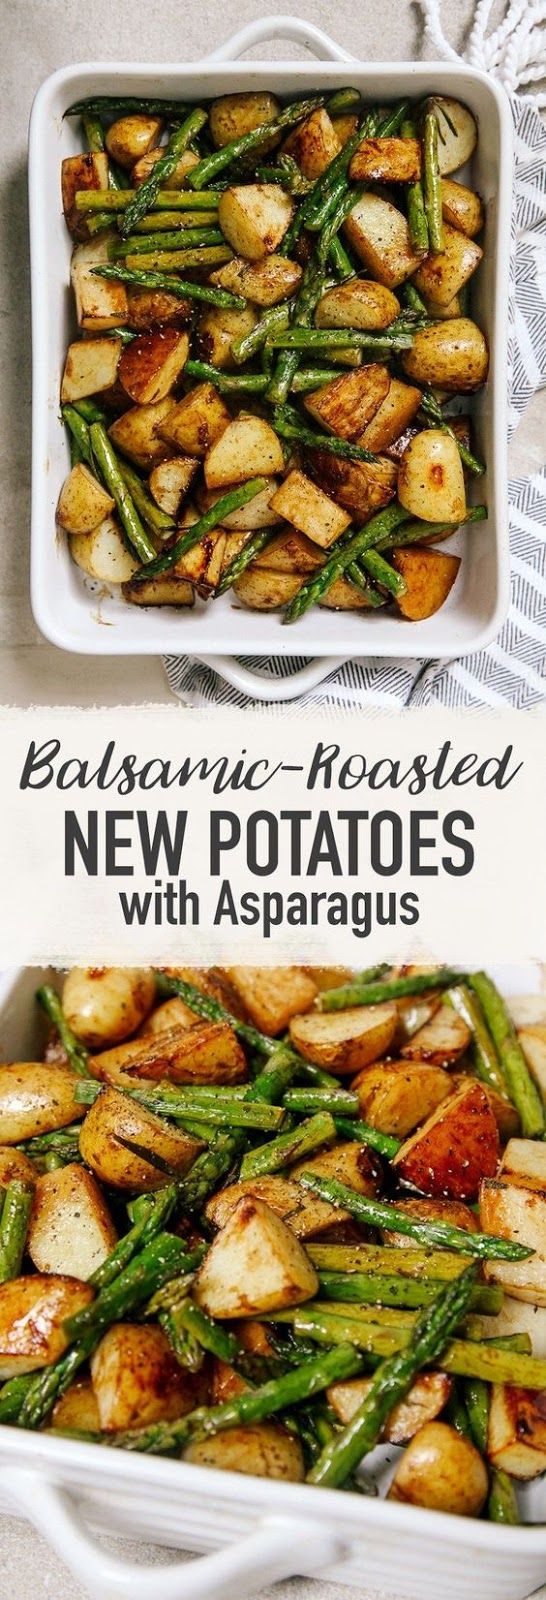 Delicious Balsamic Roasted New Potatoes with Asparagus